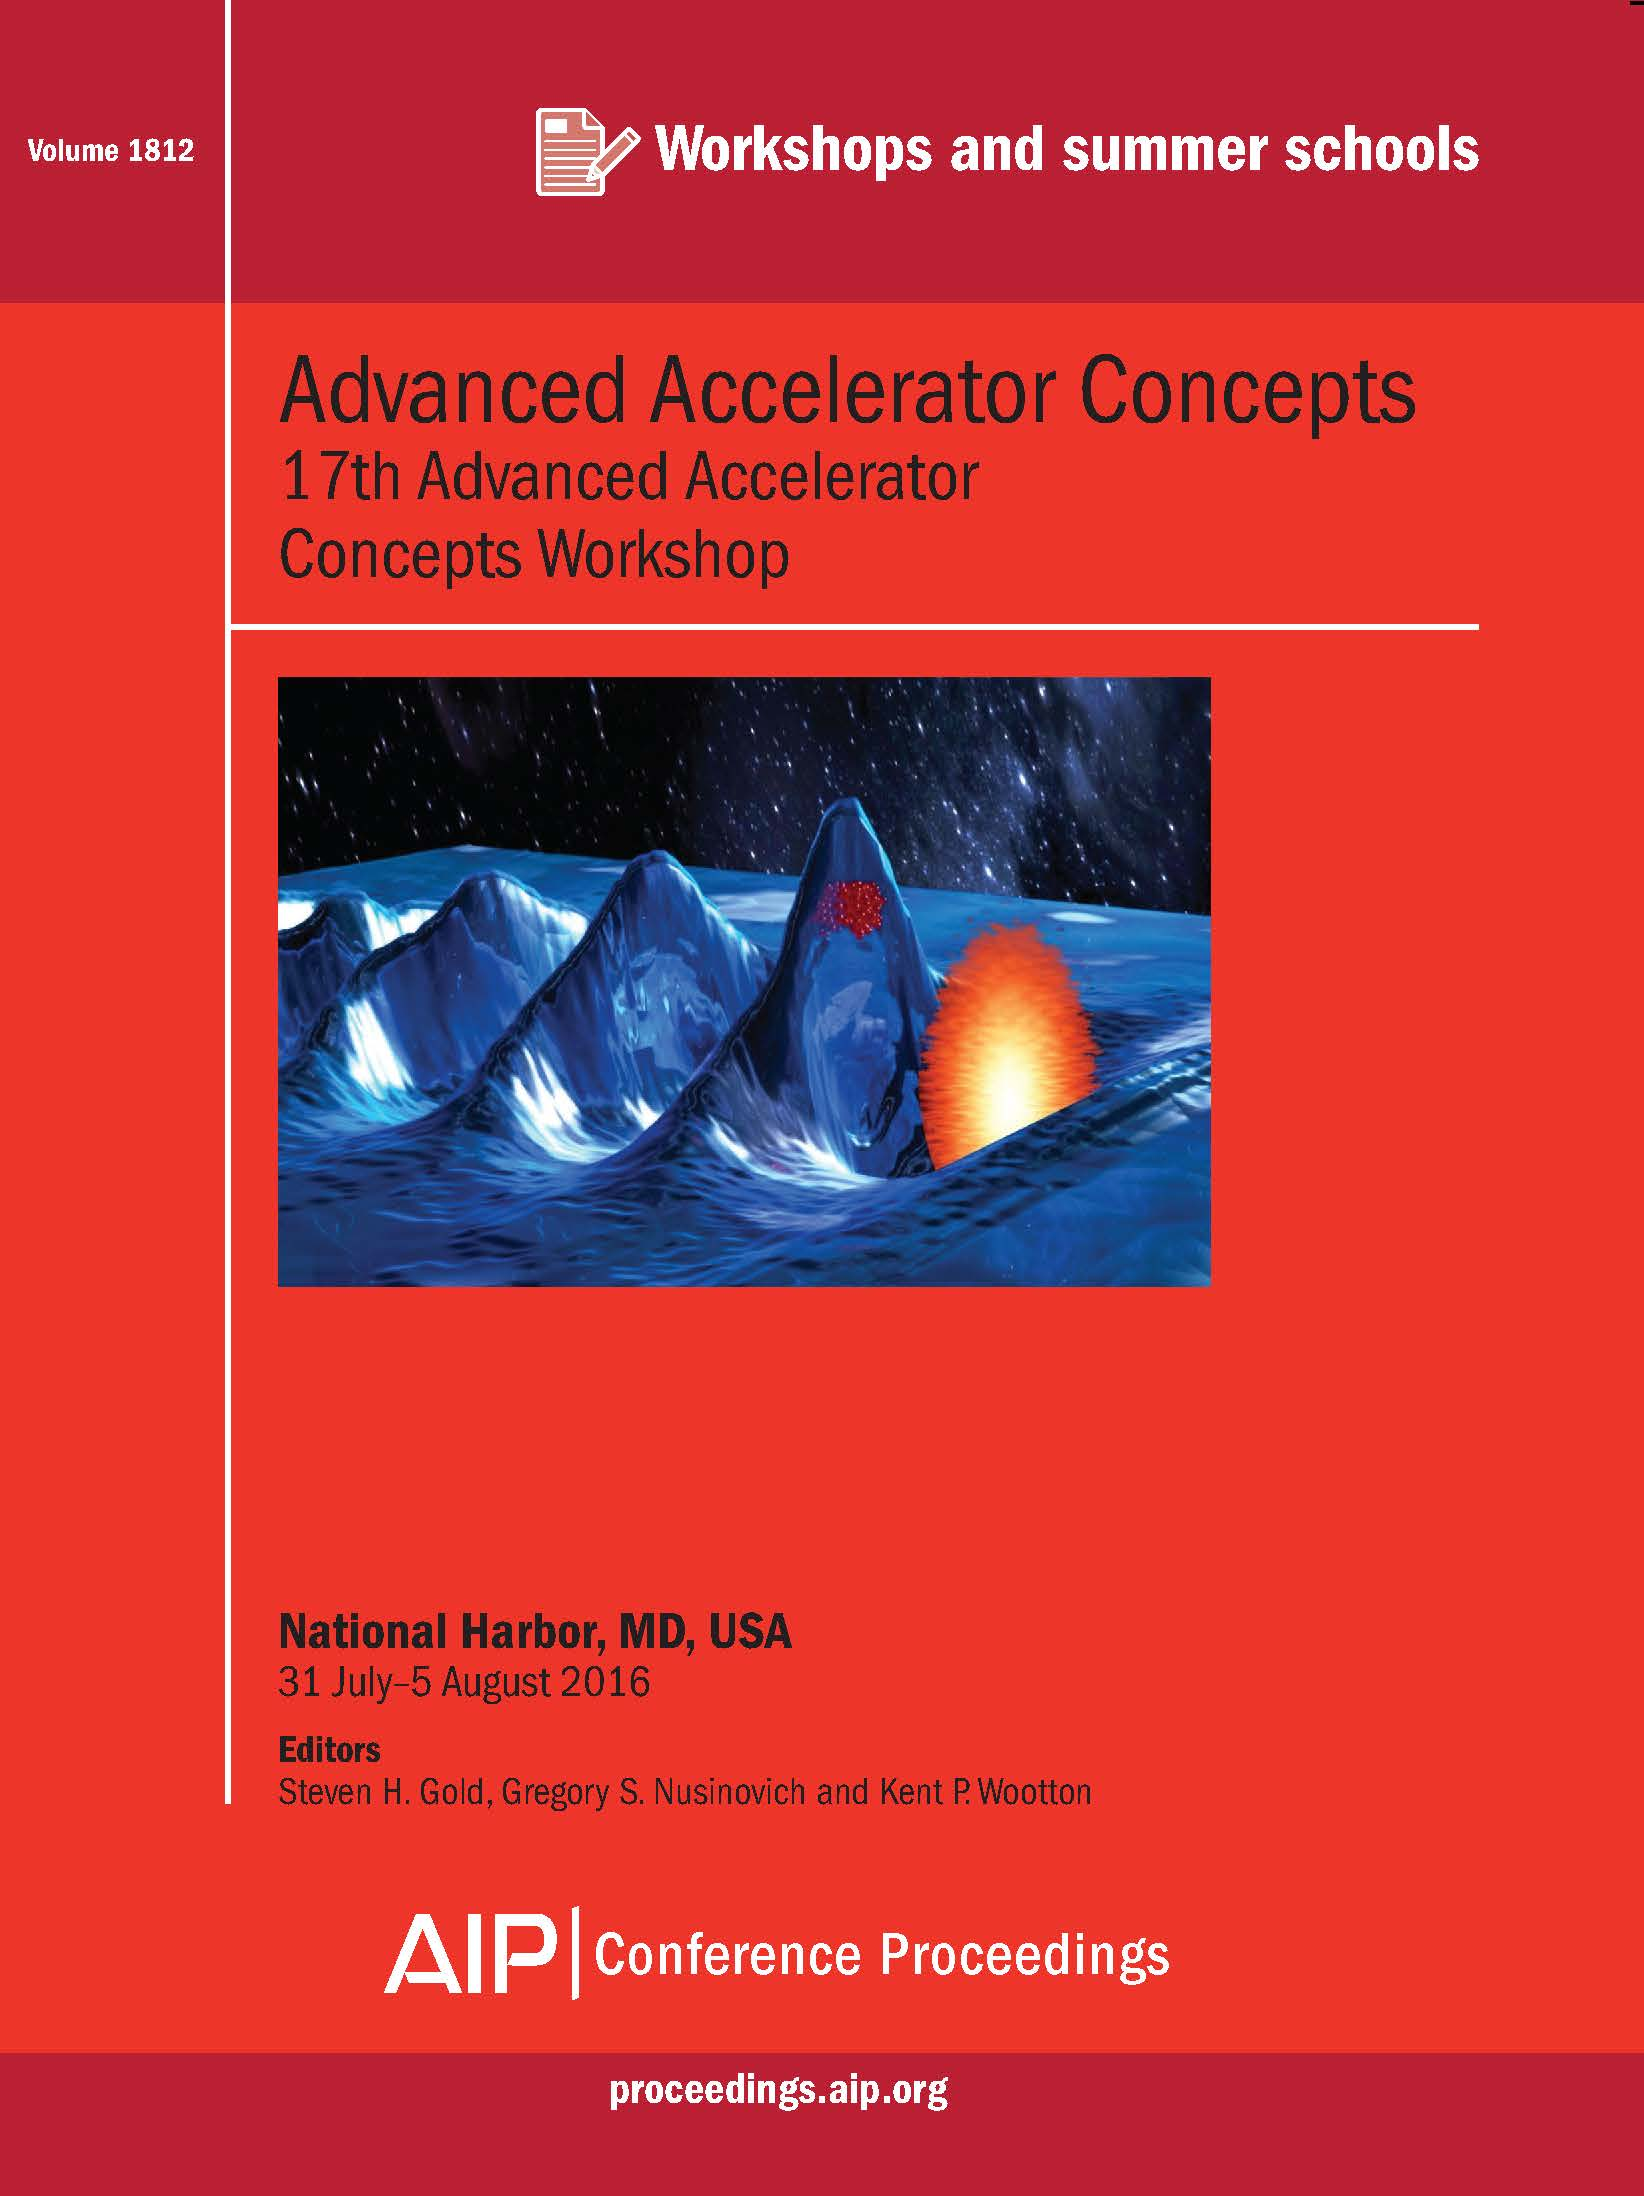 Volume 1812: Advanced Accelerator Concepts | AIP Publishing Print on